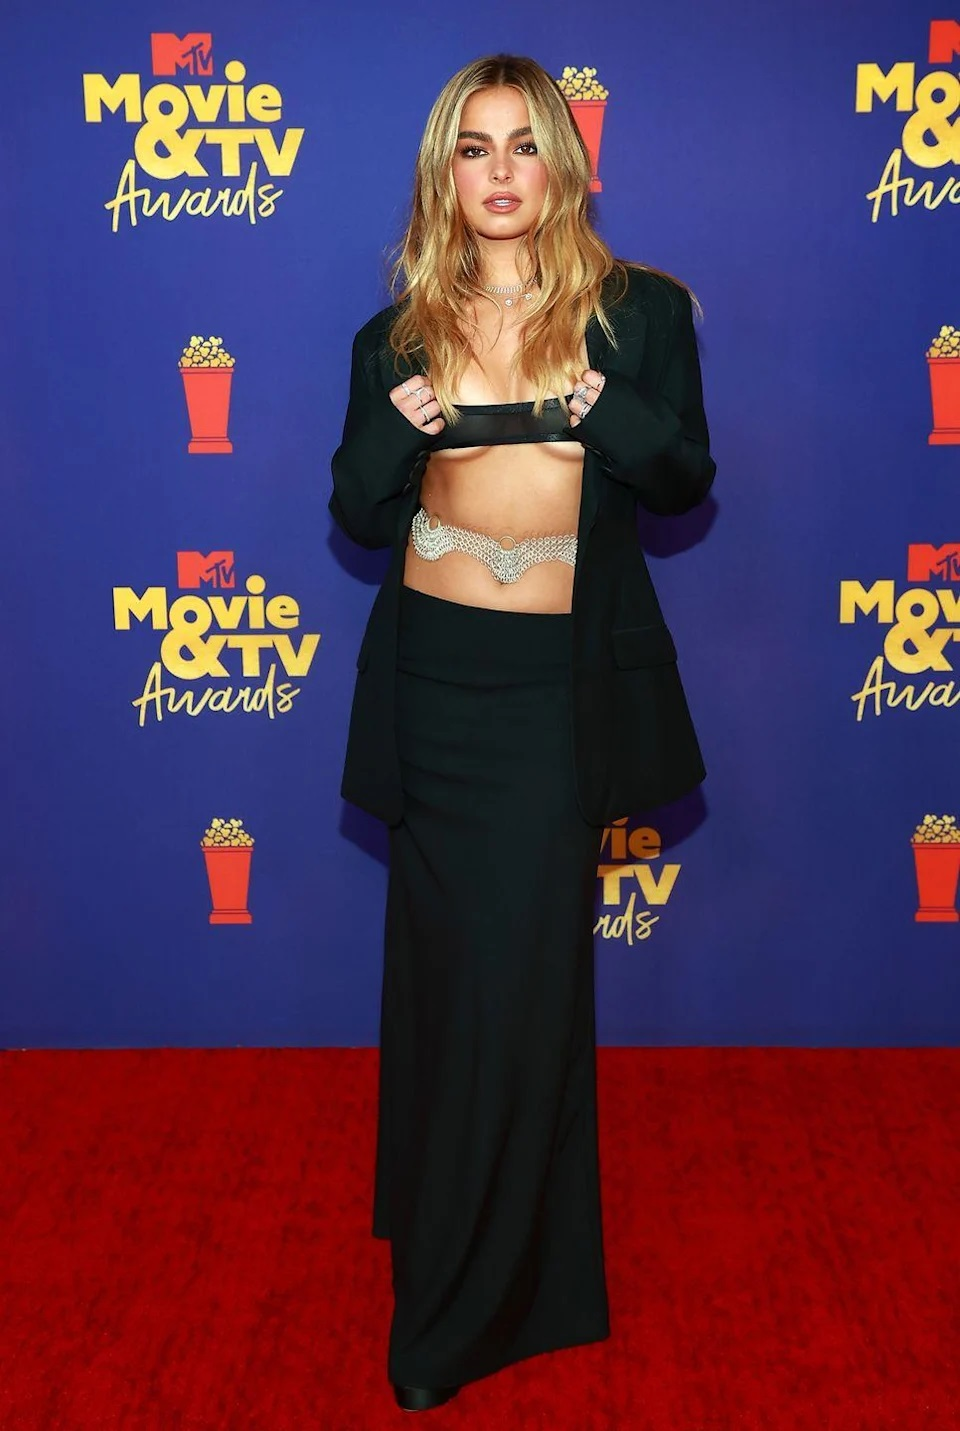 Addison Rae leaves little to the imagination at the 2021 MTV Movie & TV Awards